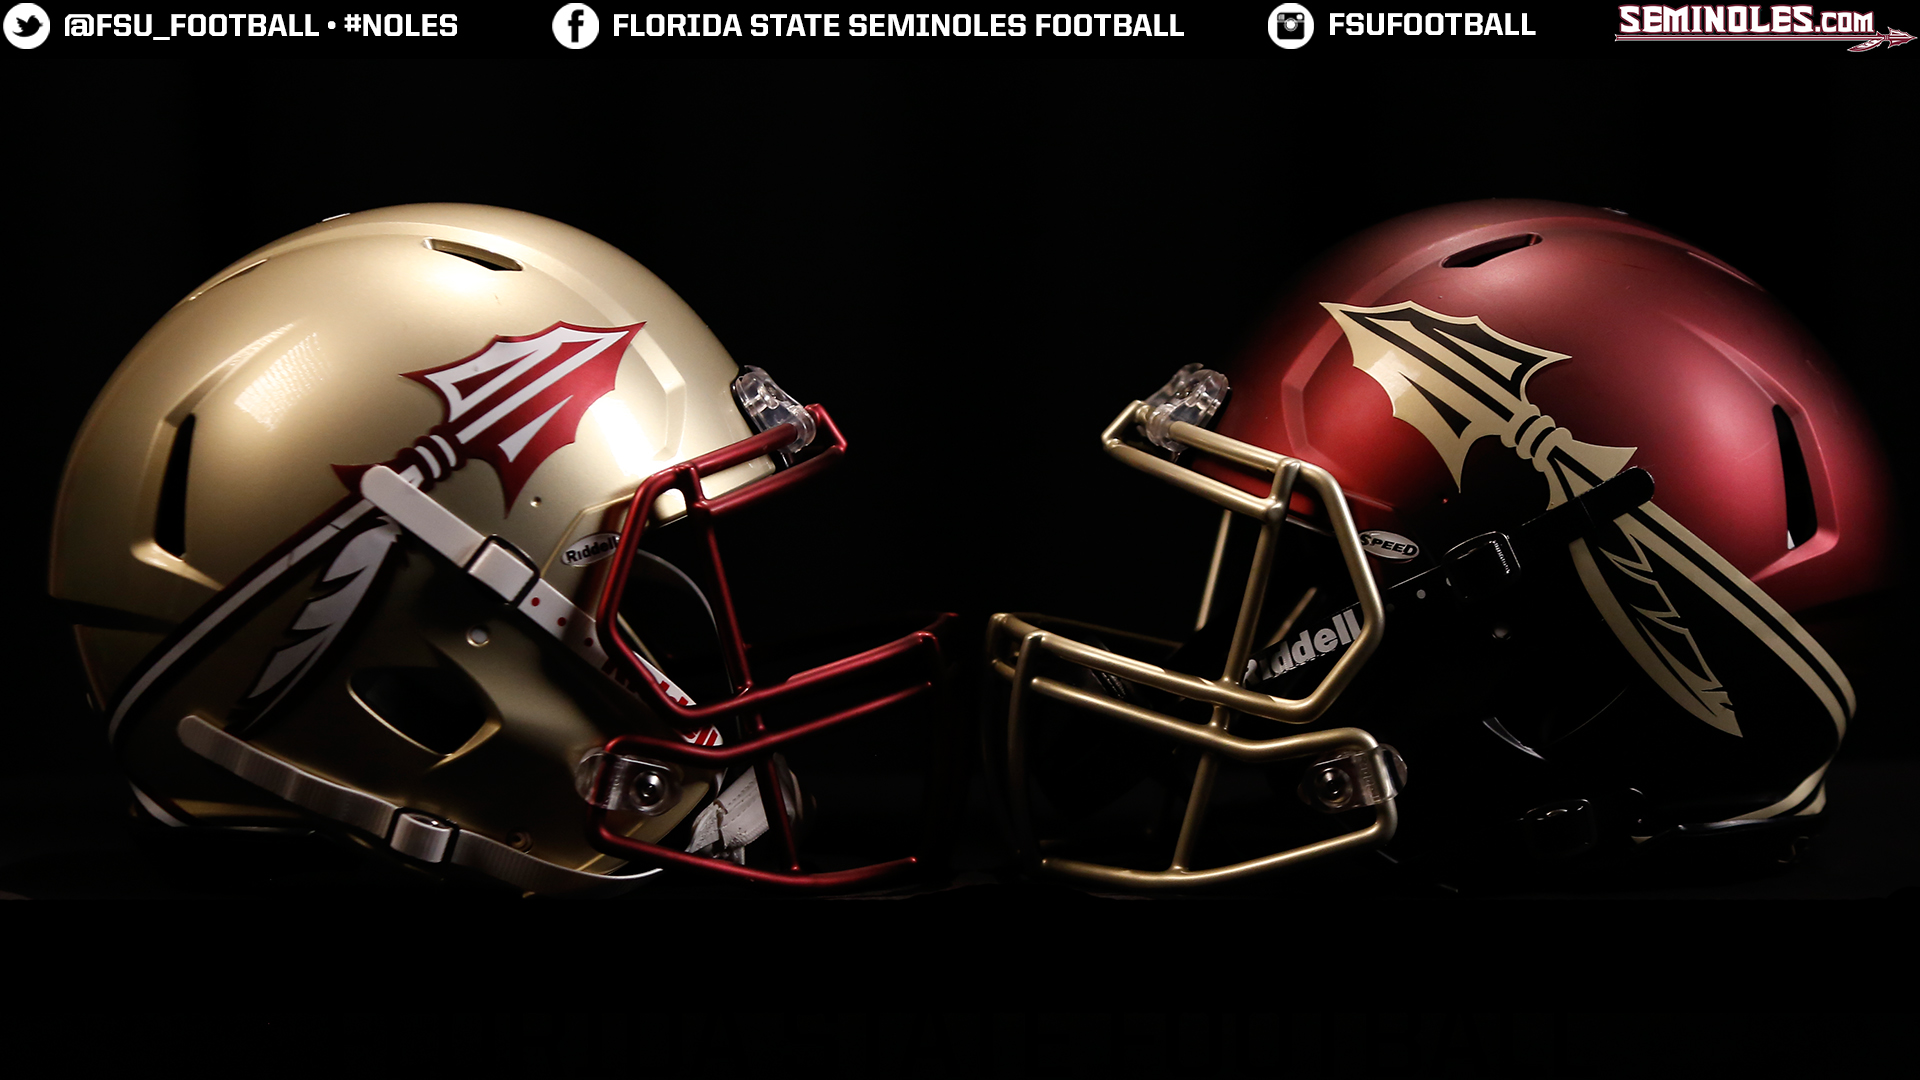 Seminoles.com Desktop Wallpapers